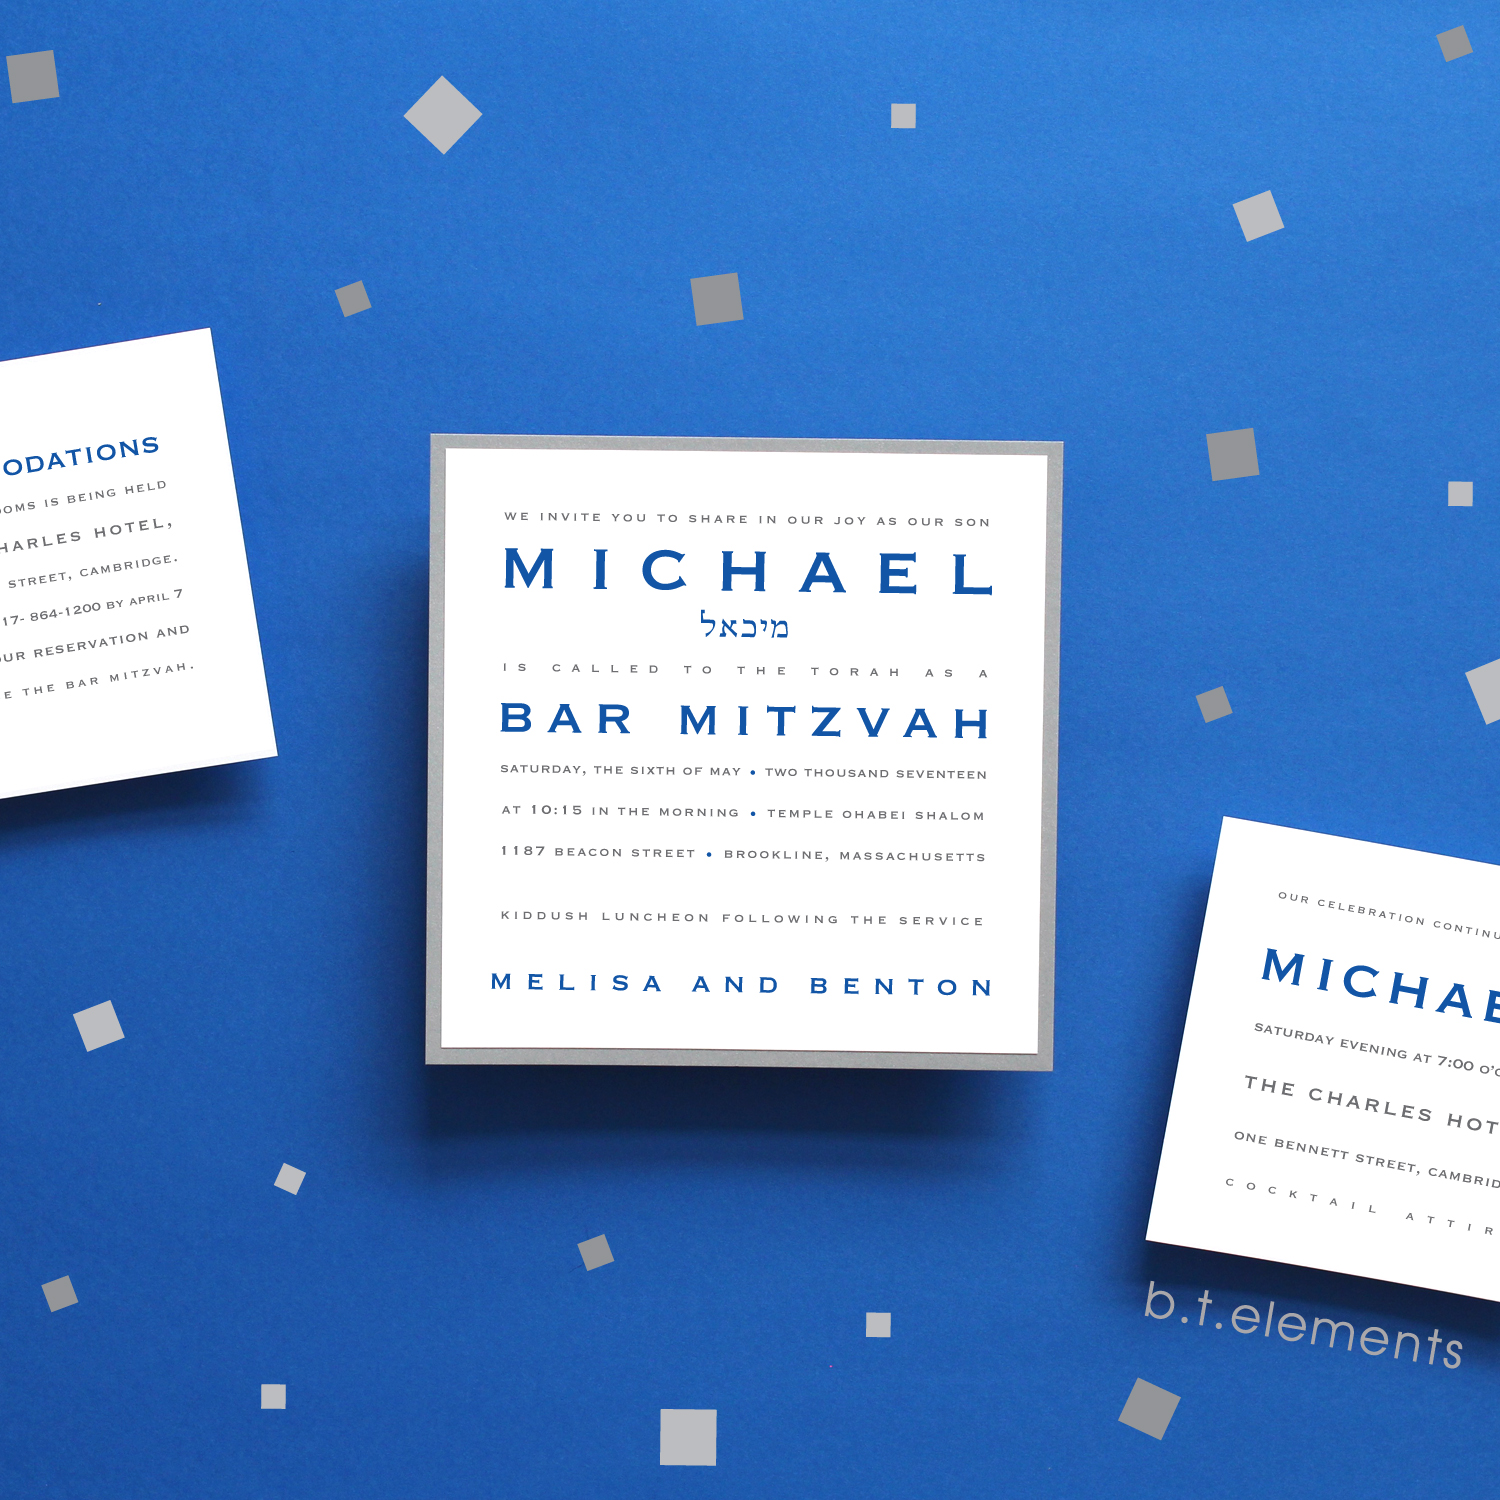 Michael's Bar Mitzvah Invitation, 2017   Store: Toby Dondis in Waban, MA